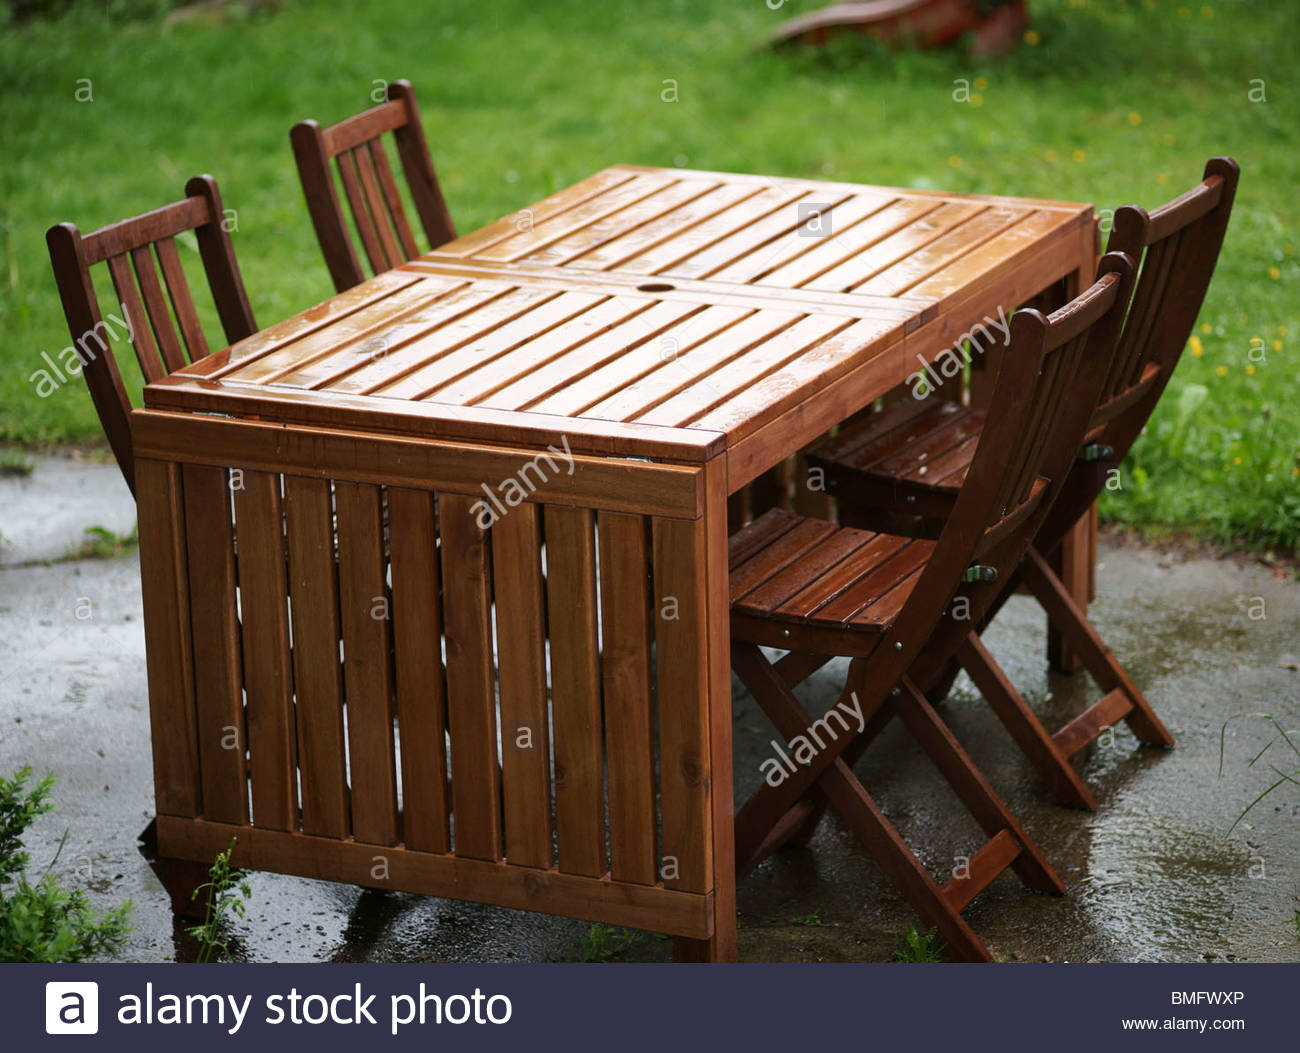 Wooden Table And Chairs Garden Furniture Wooden Table And Chairs Stock Photo